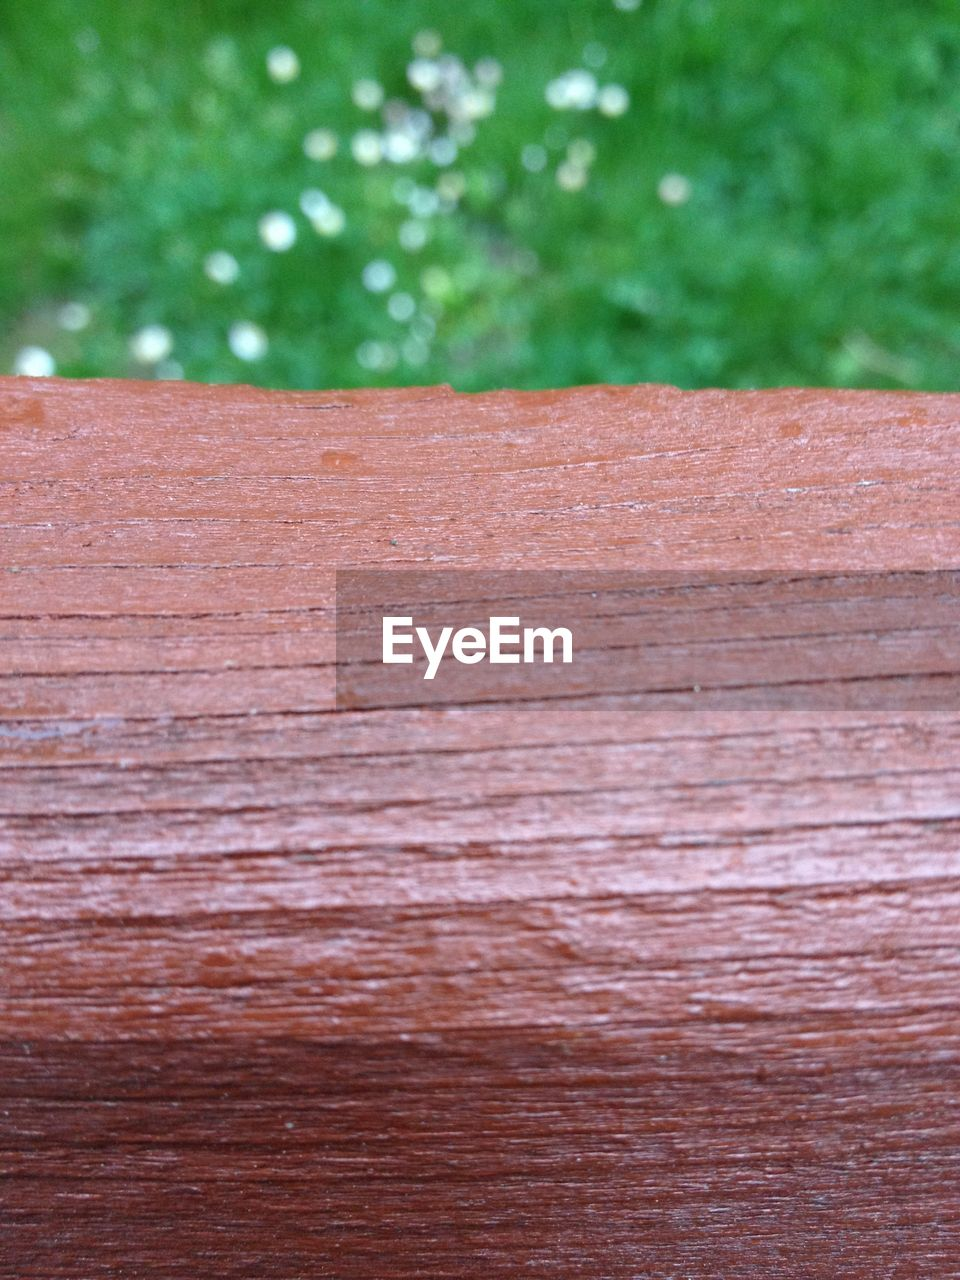 wood - material, tree, wood, close-up, no people, textured, day, brown, plant, pattern, outdoors, forest, nature, wood grain, focus on foreground, full frame, backgrounds, land, plank, cross section